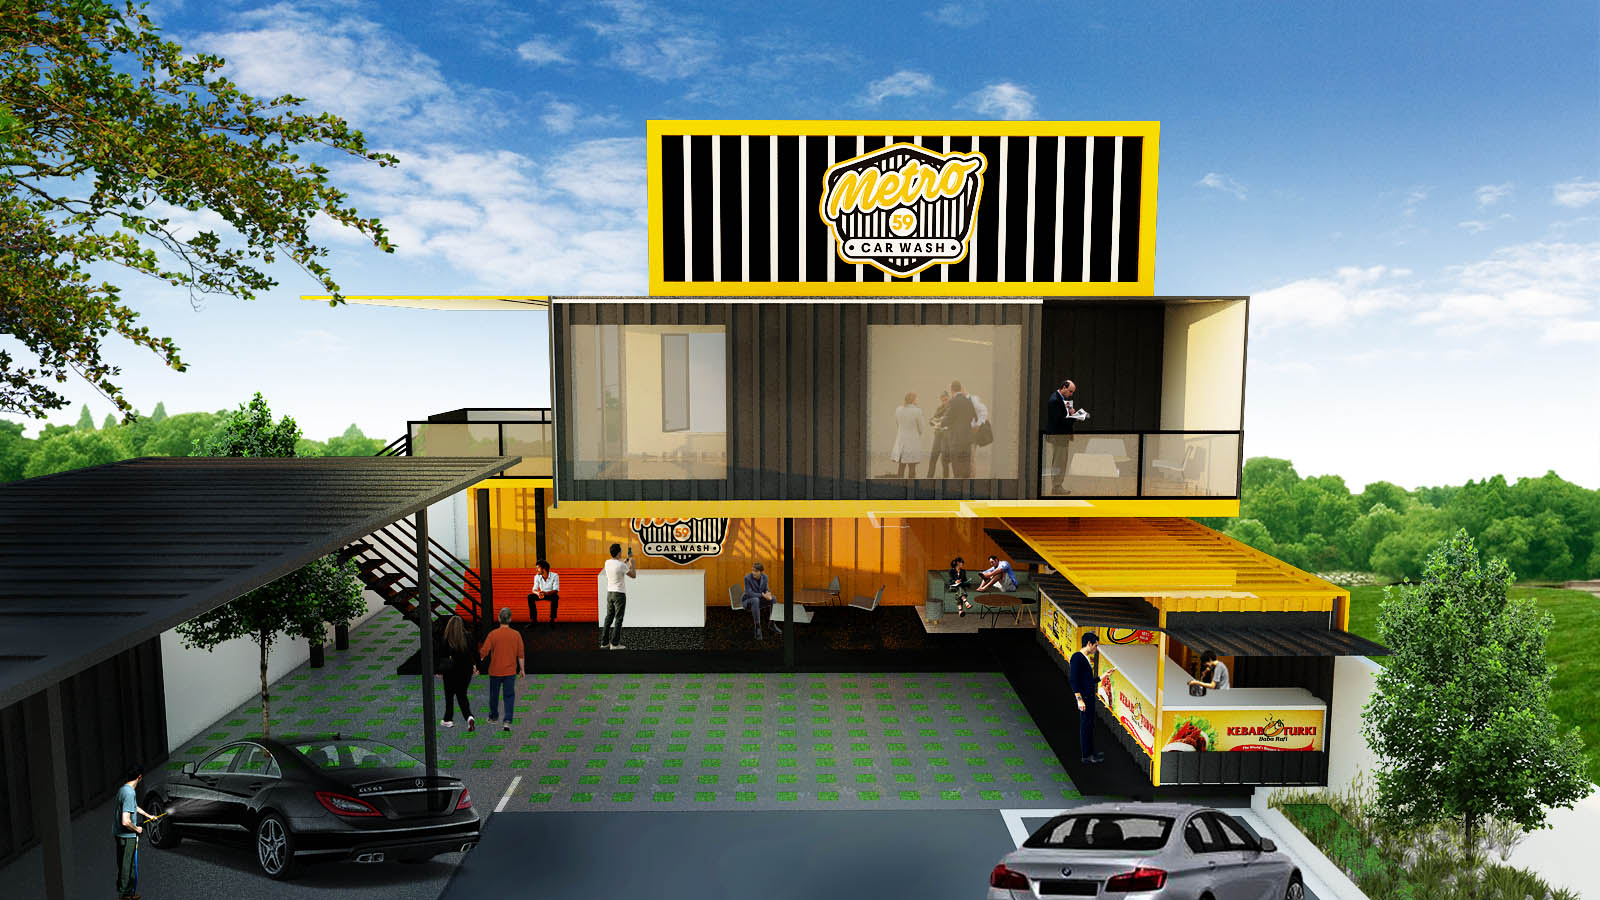 Gallery design exterior untuk metro59 car wash for Exterior car design